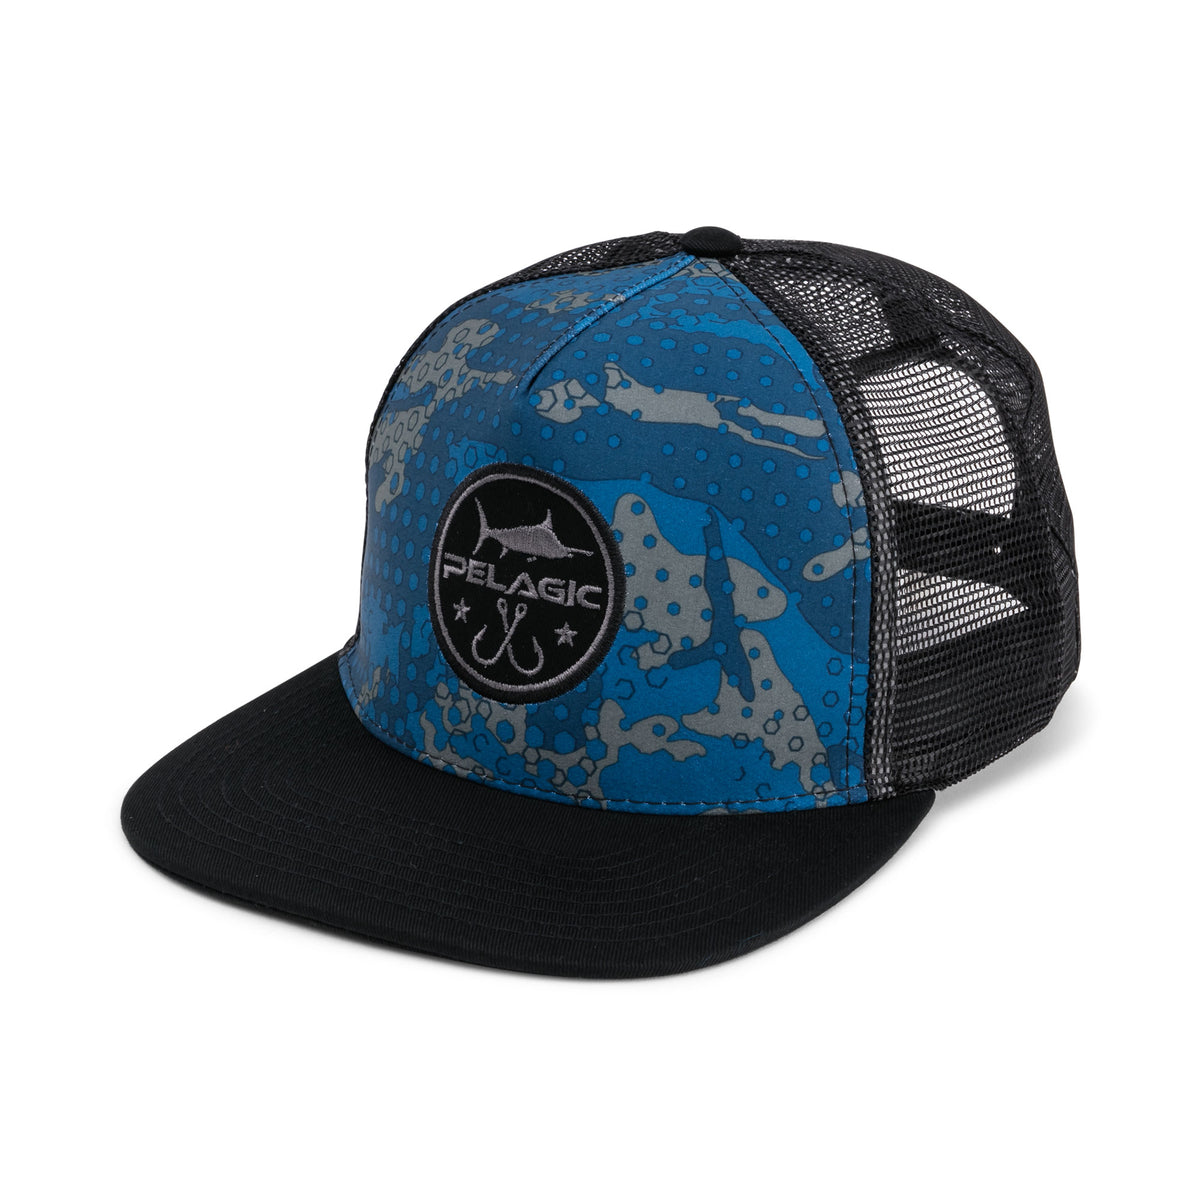 Ambush Camo Snapback Hat Big Image - 1